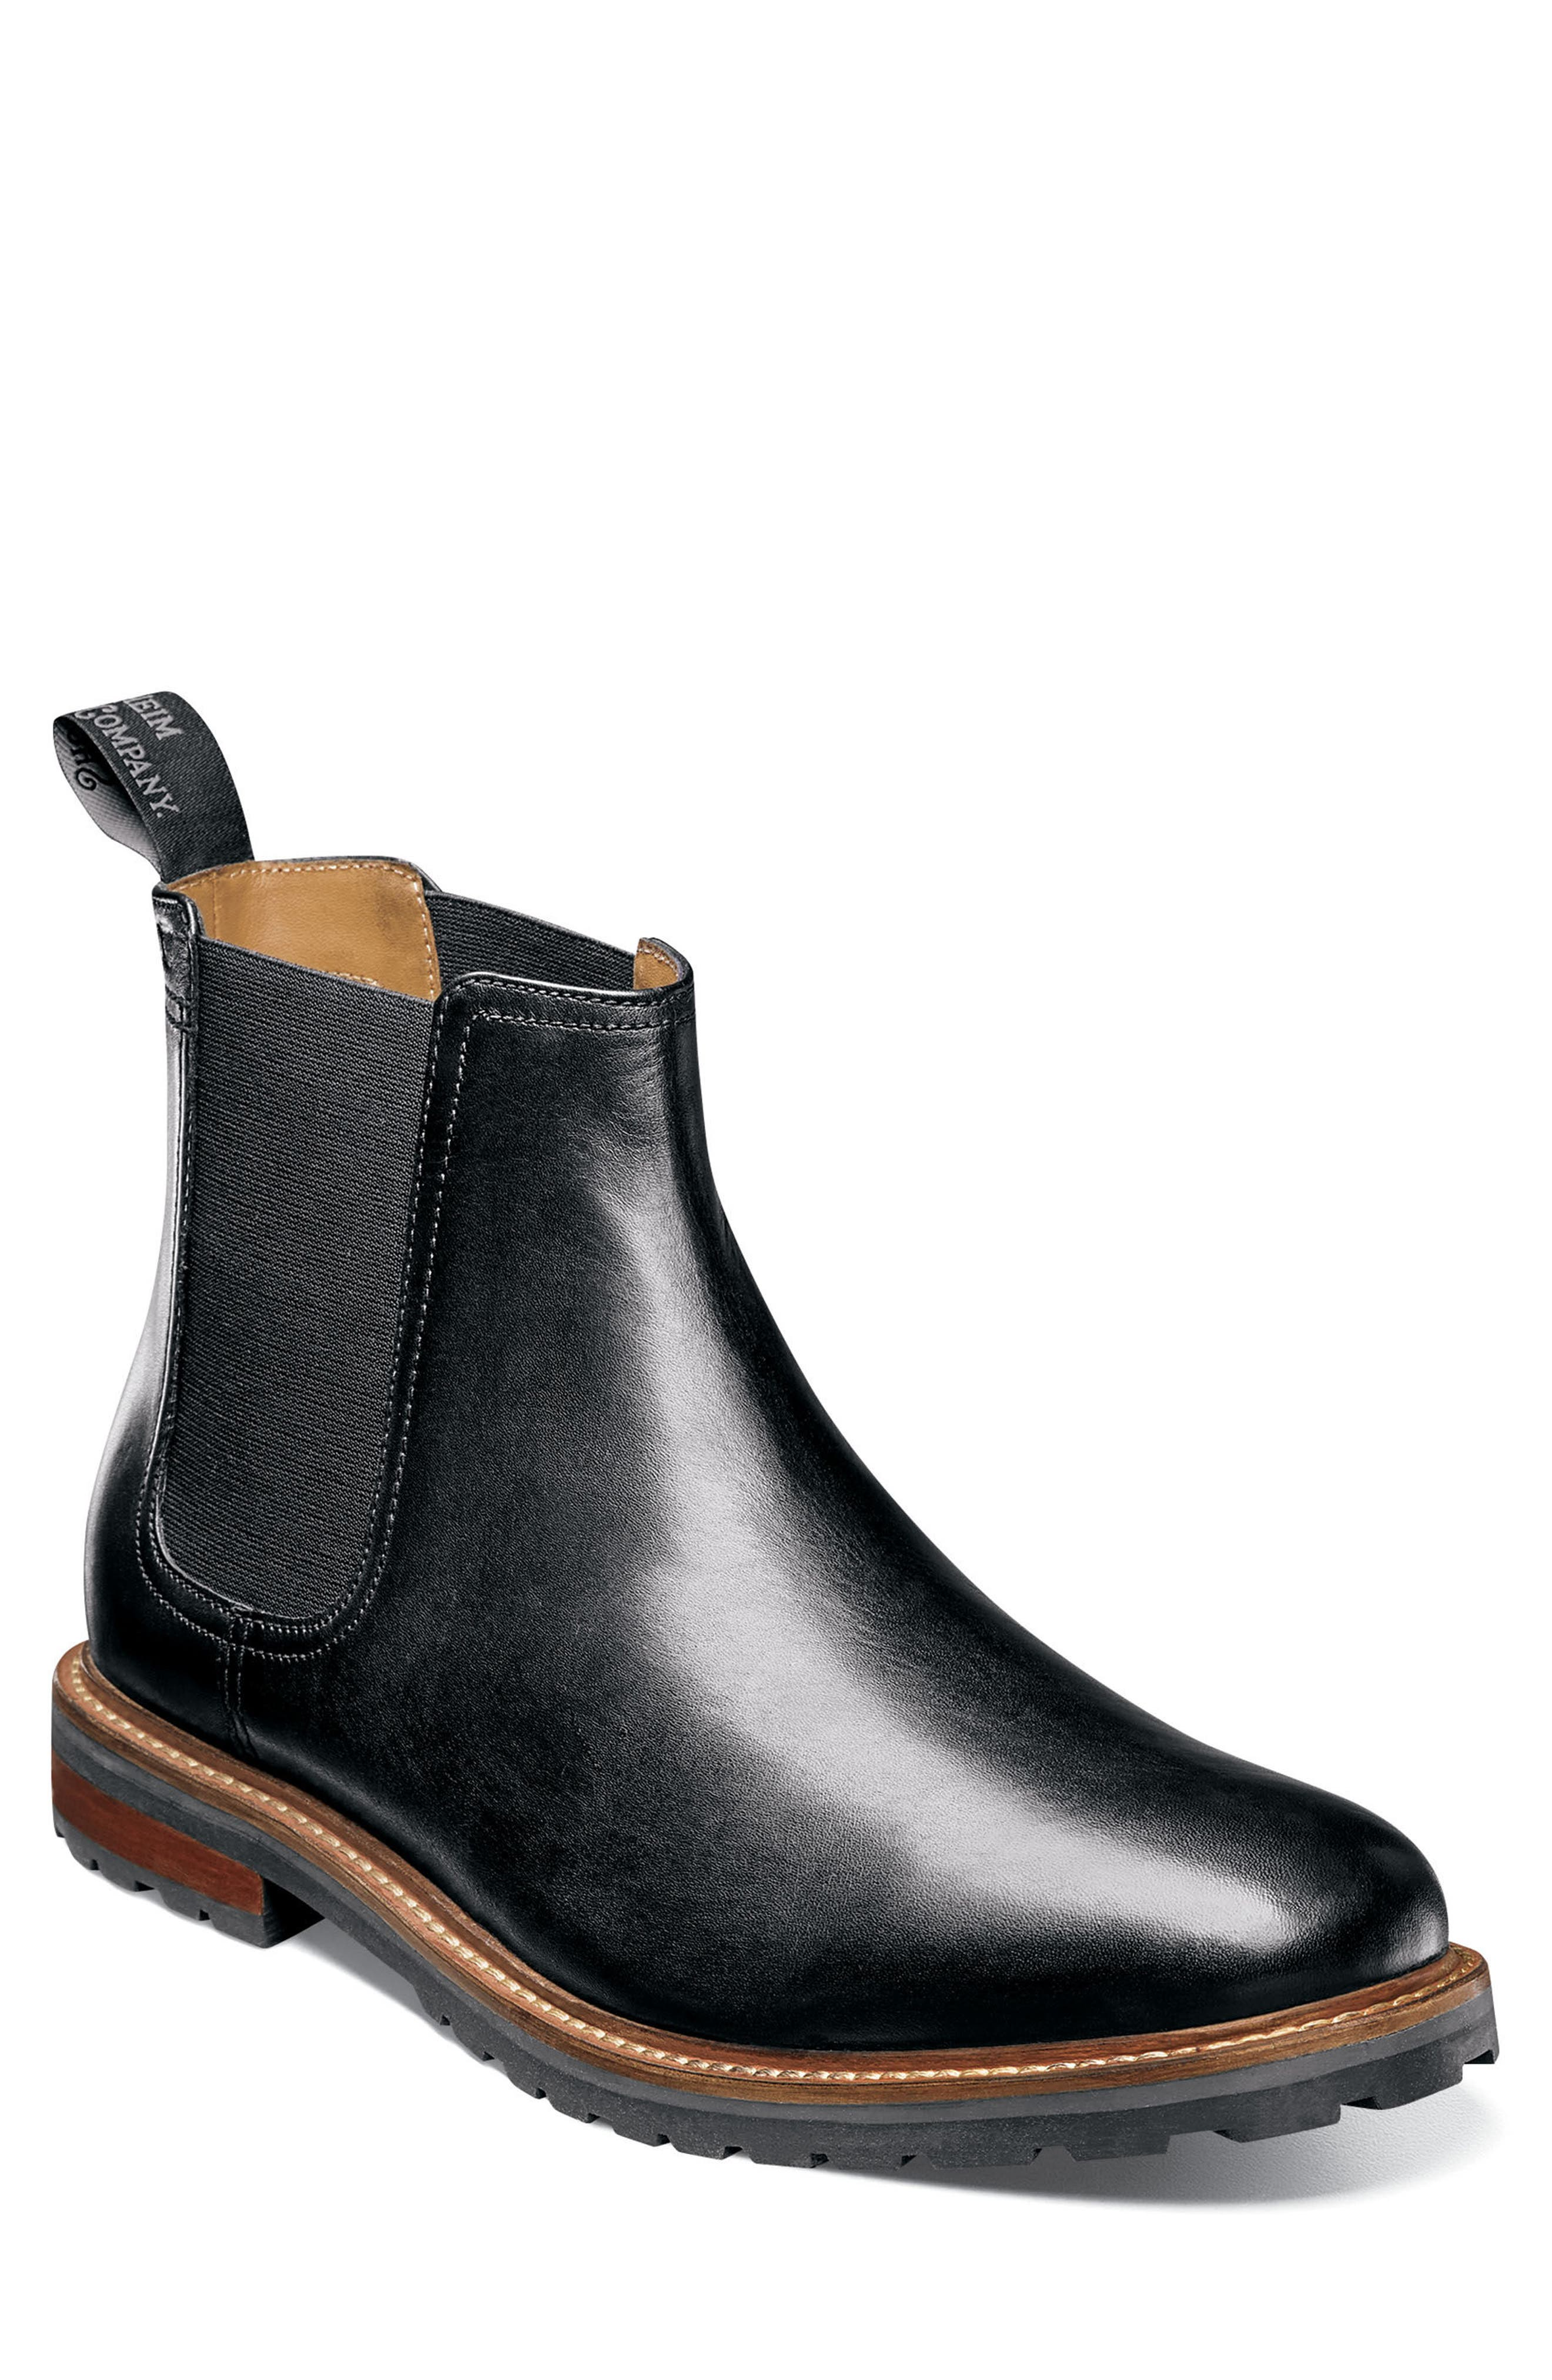 Chelsea Boots For Men Nordstrom - Boot man us map